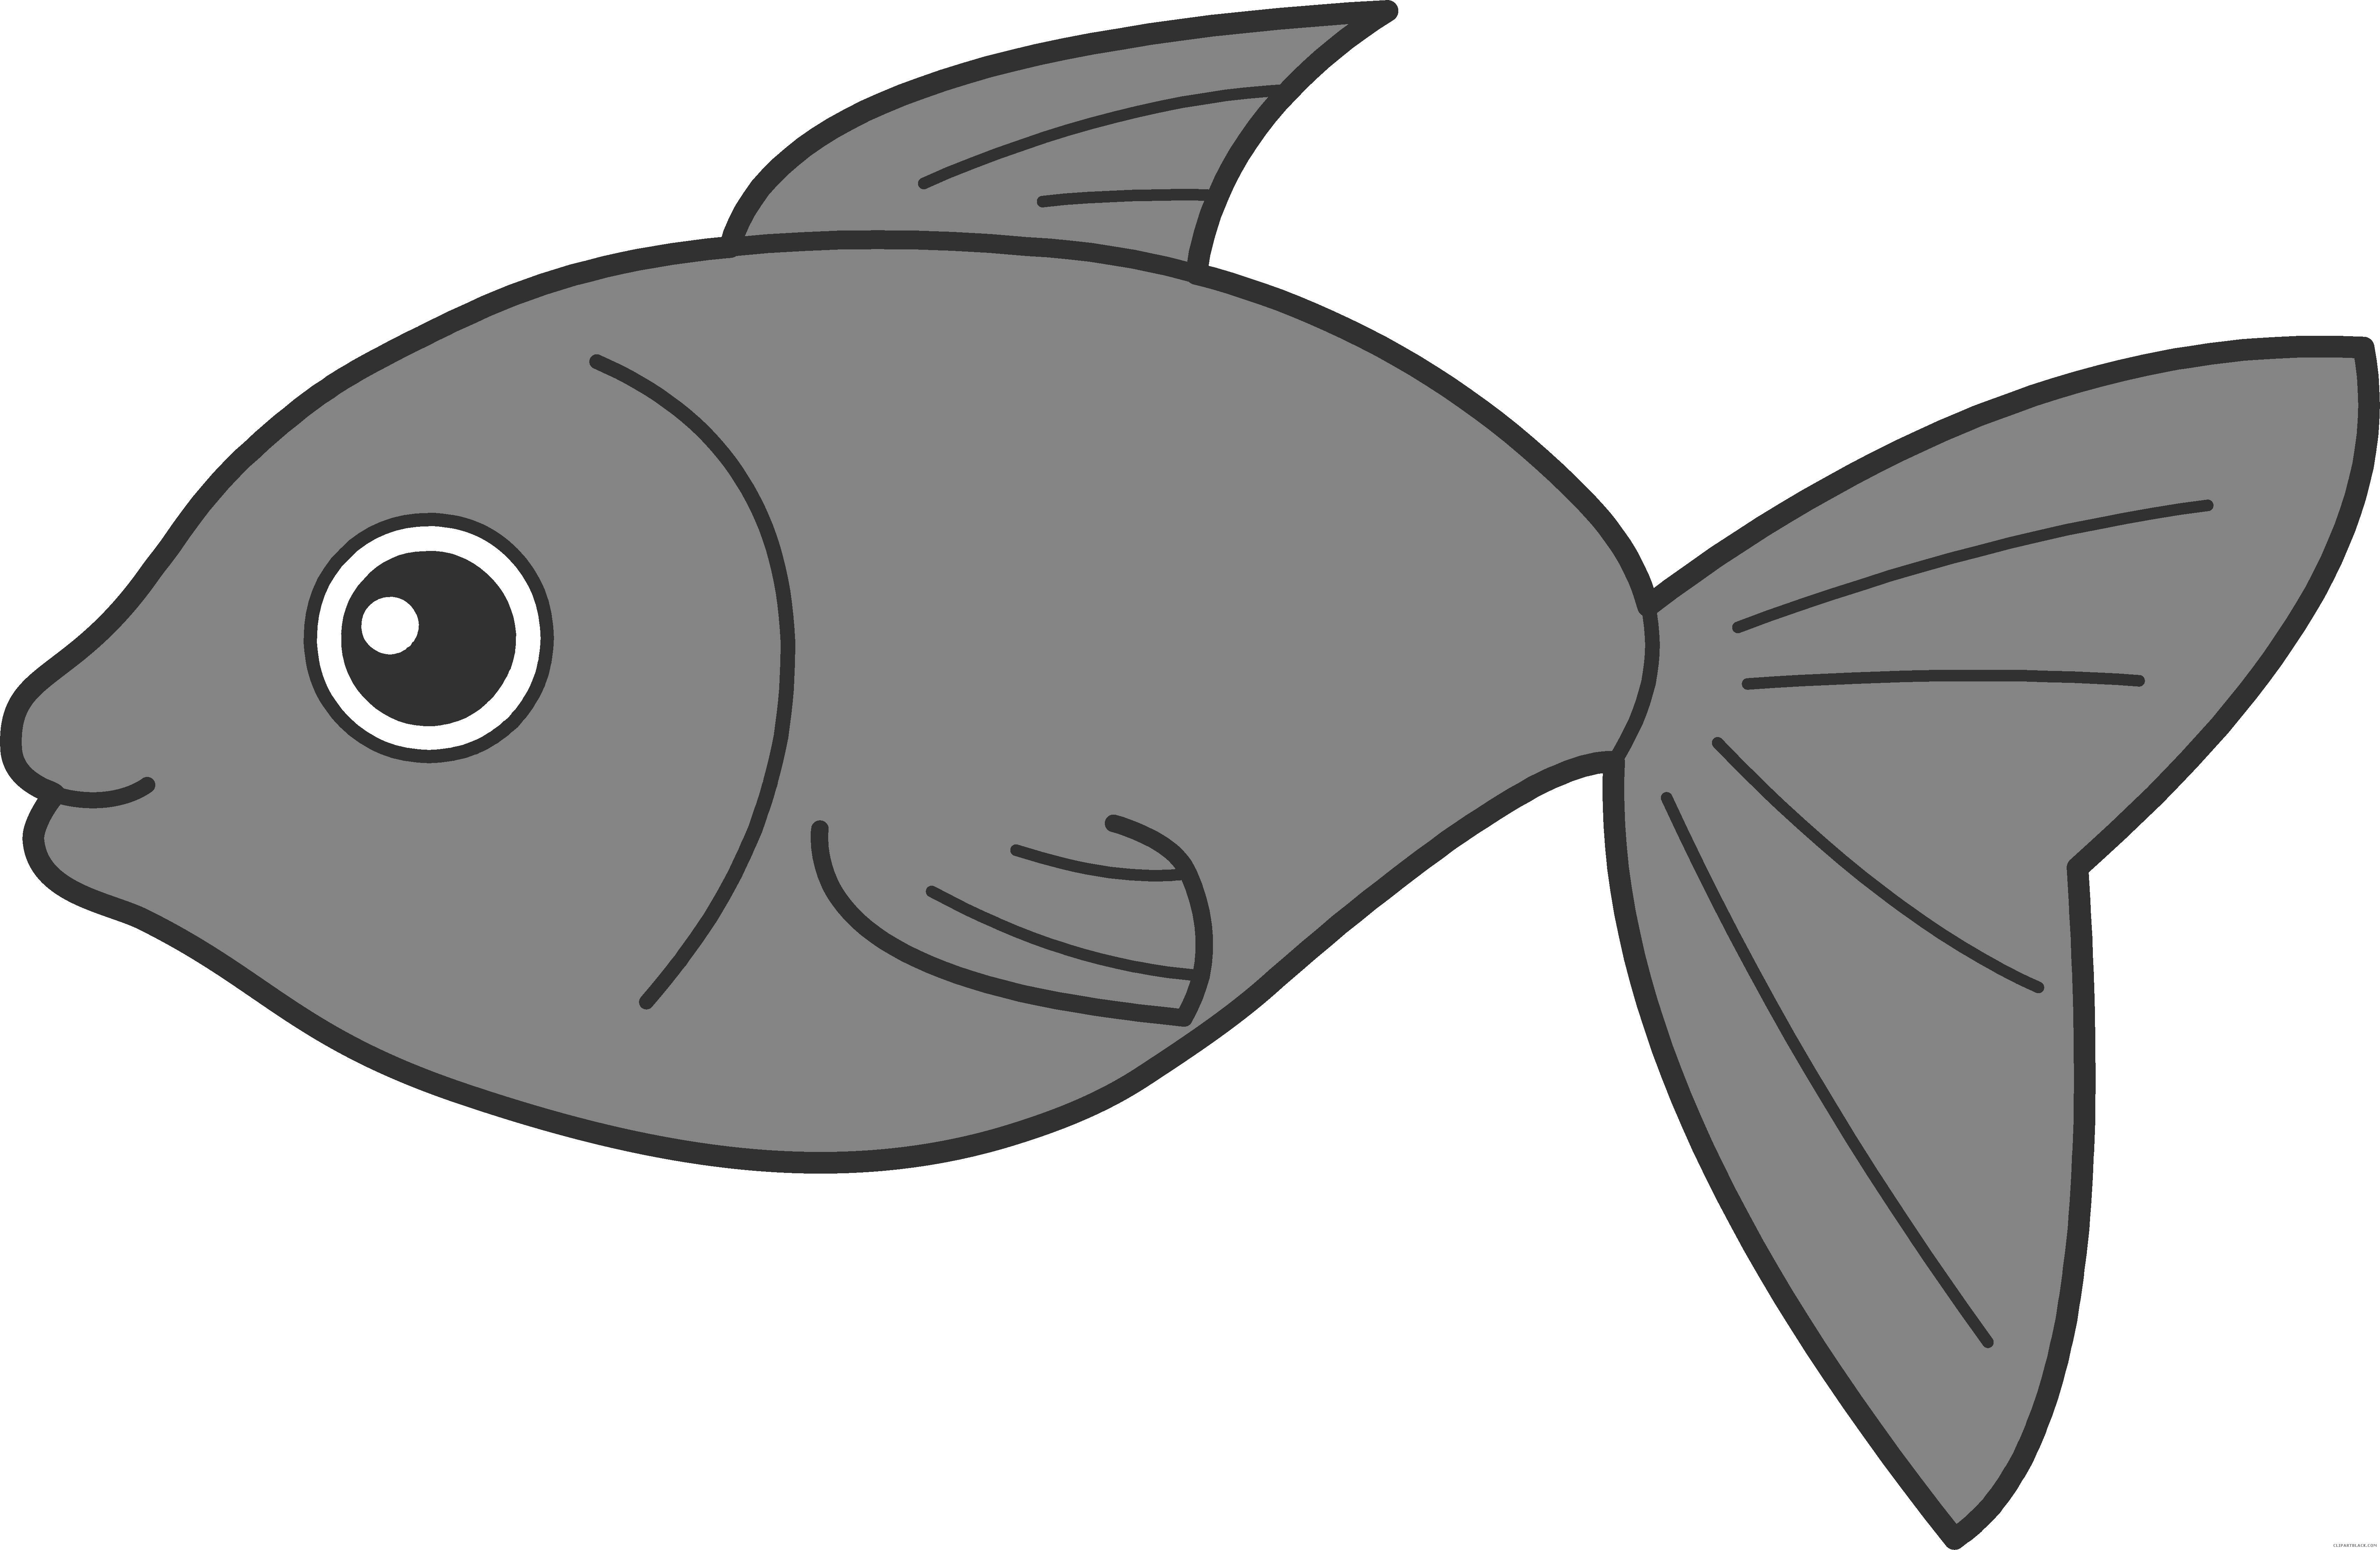 vector free download Vector black and white download beta fish